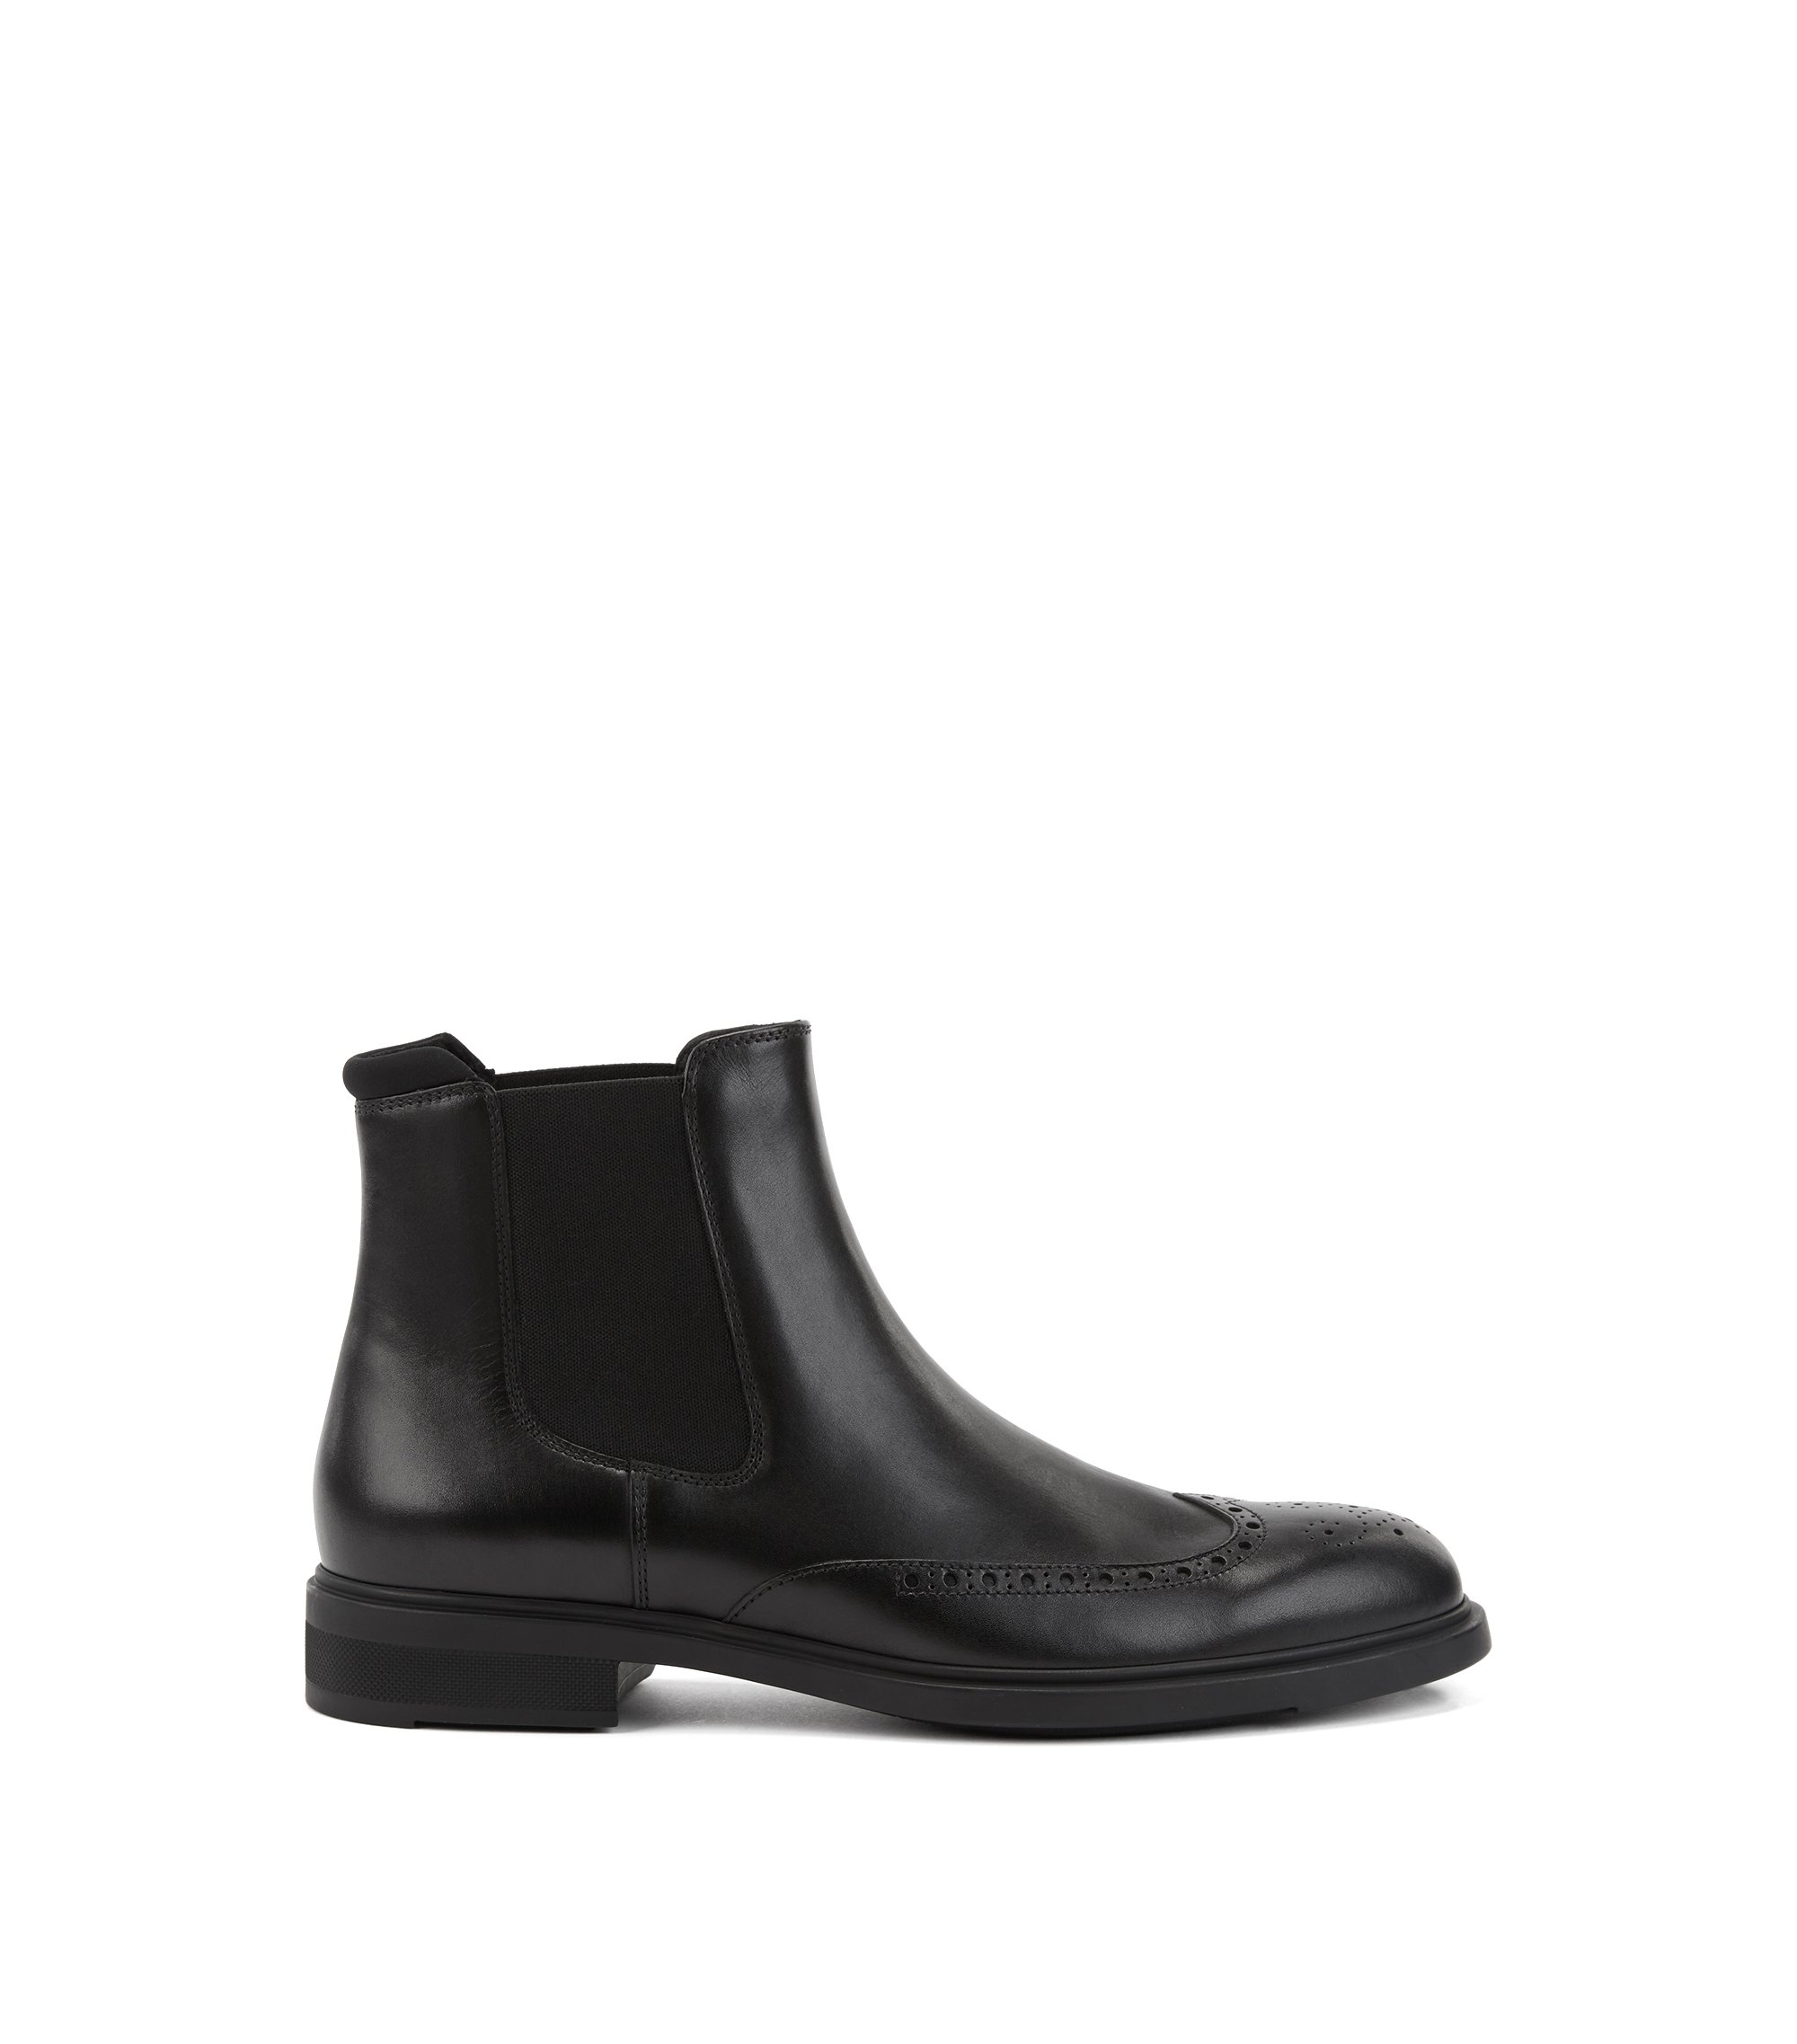 Chelsea boots in calf leather with brogue details, Black